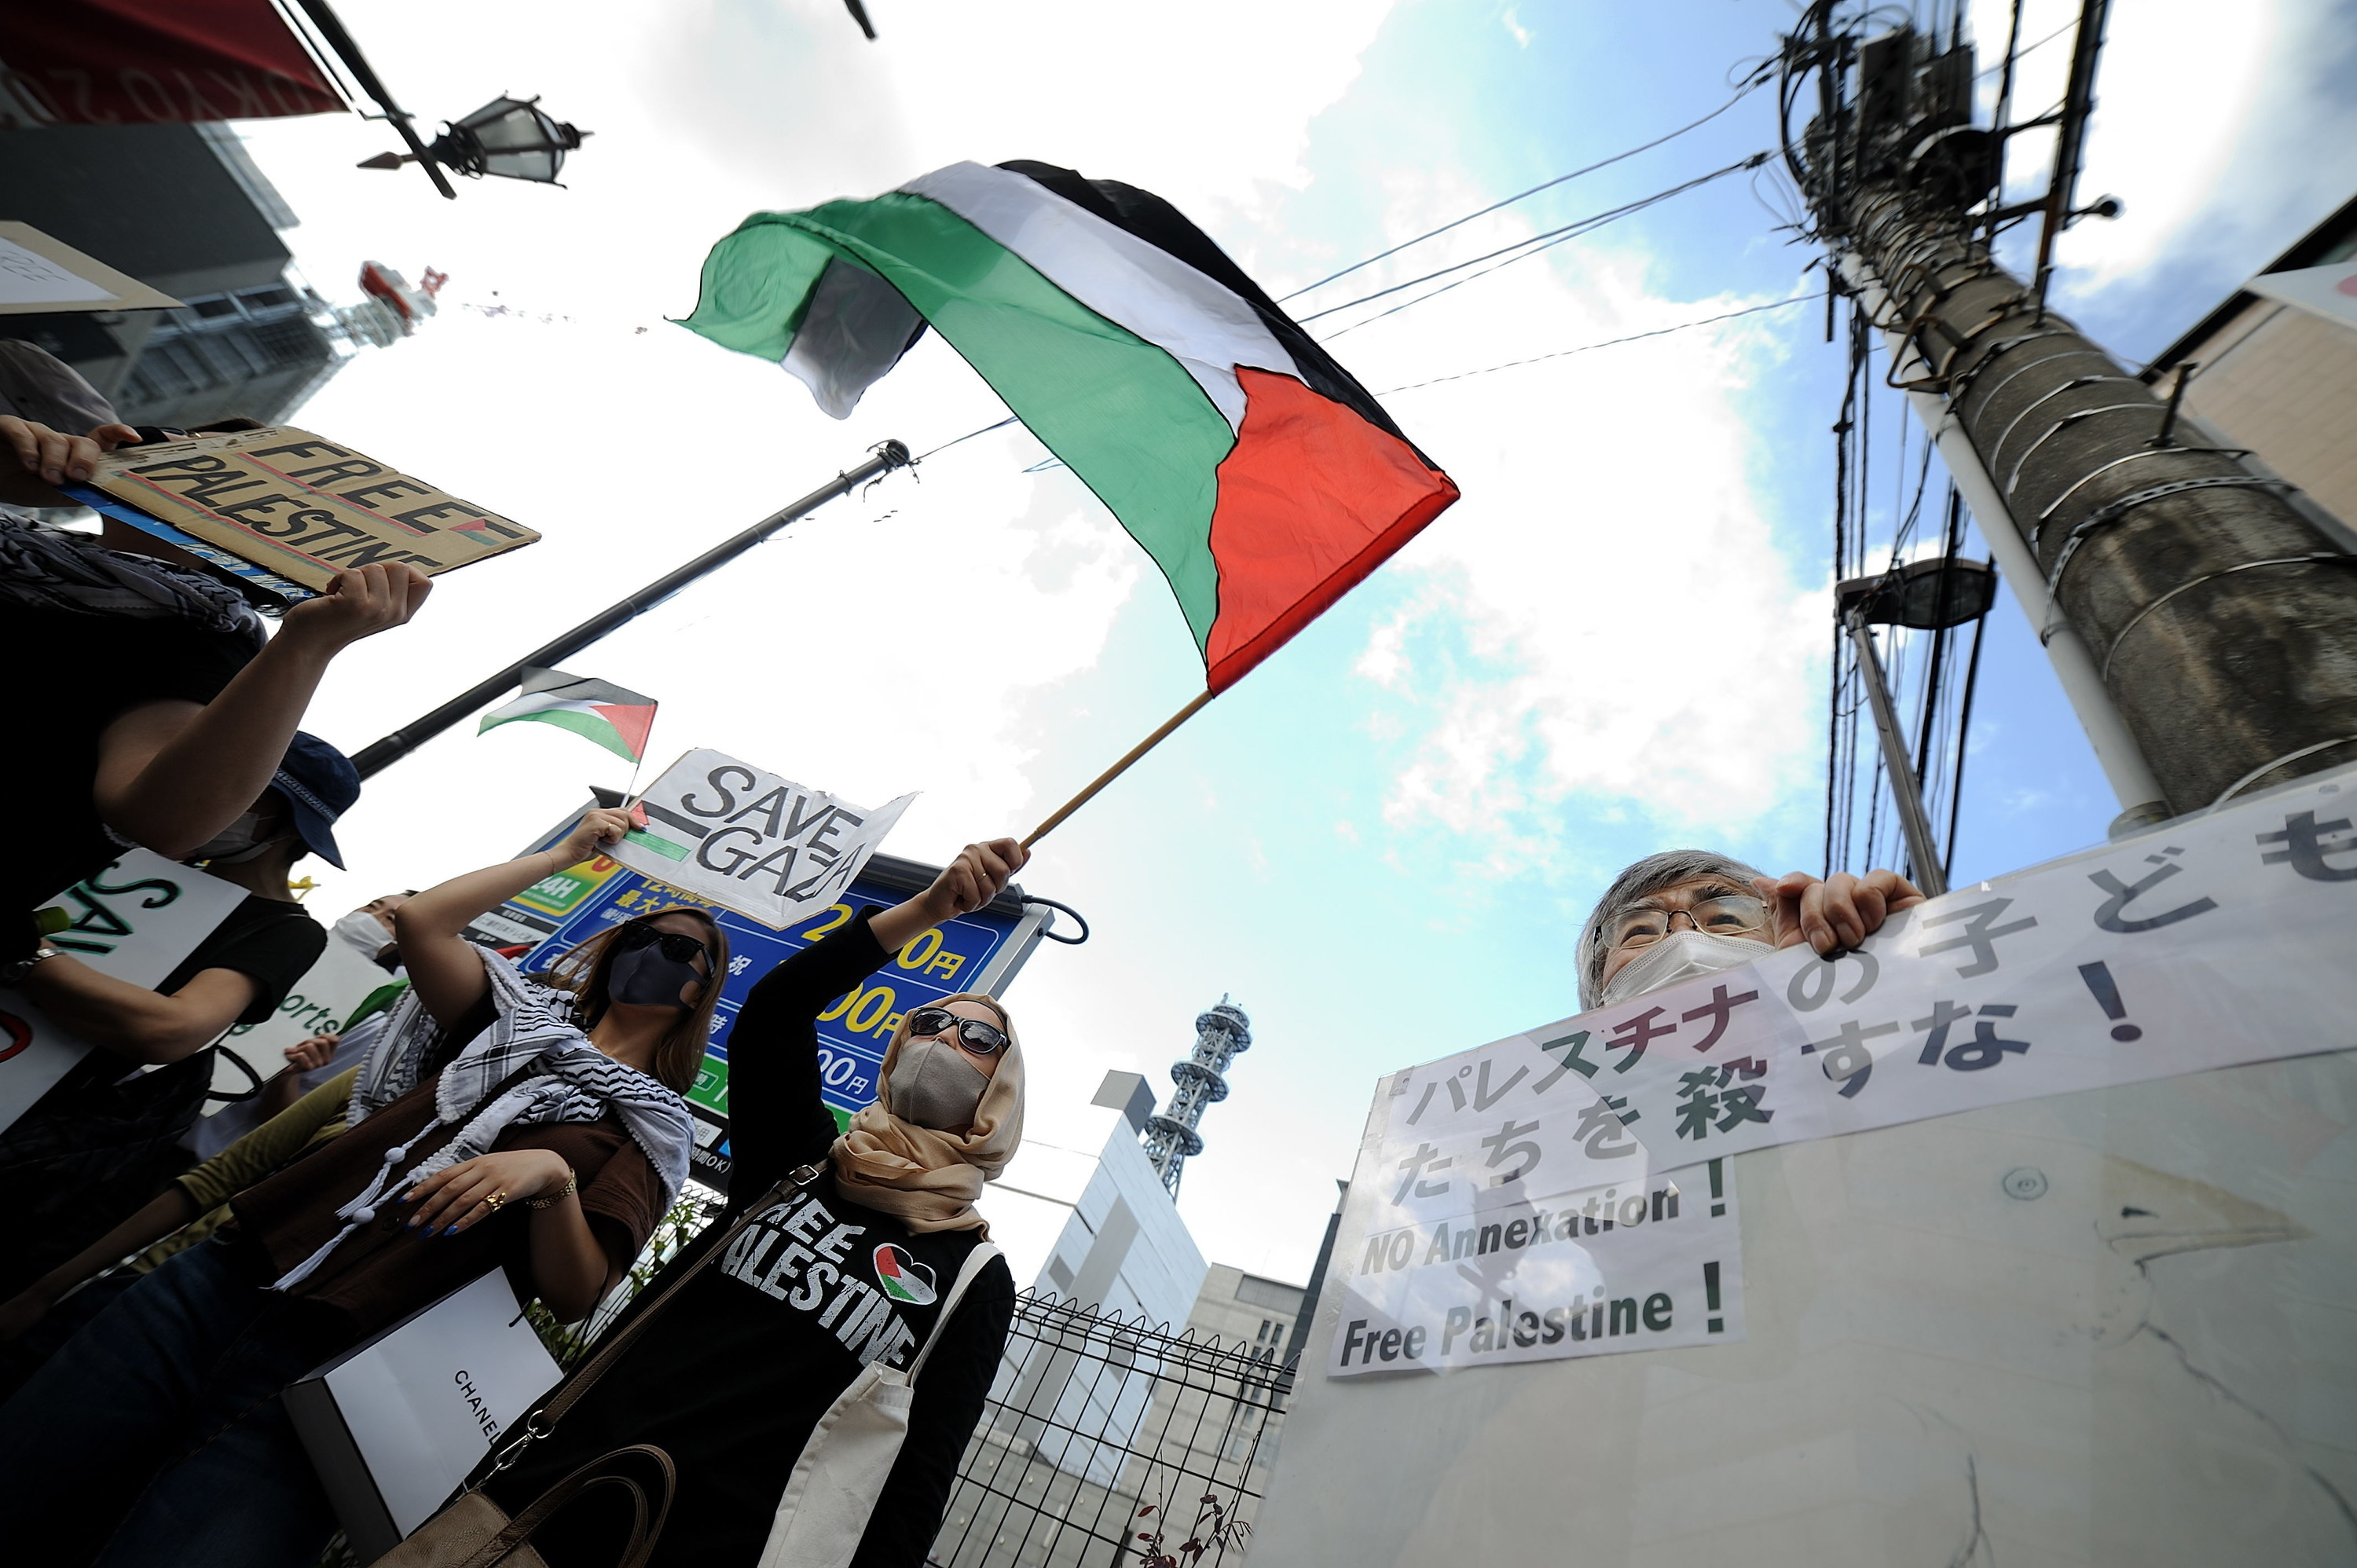 Protesters holding up signs and the Palestinian flag